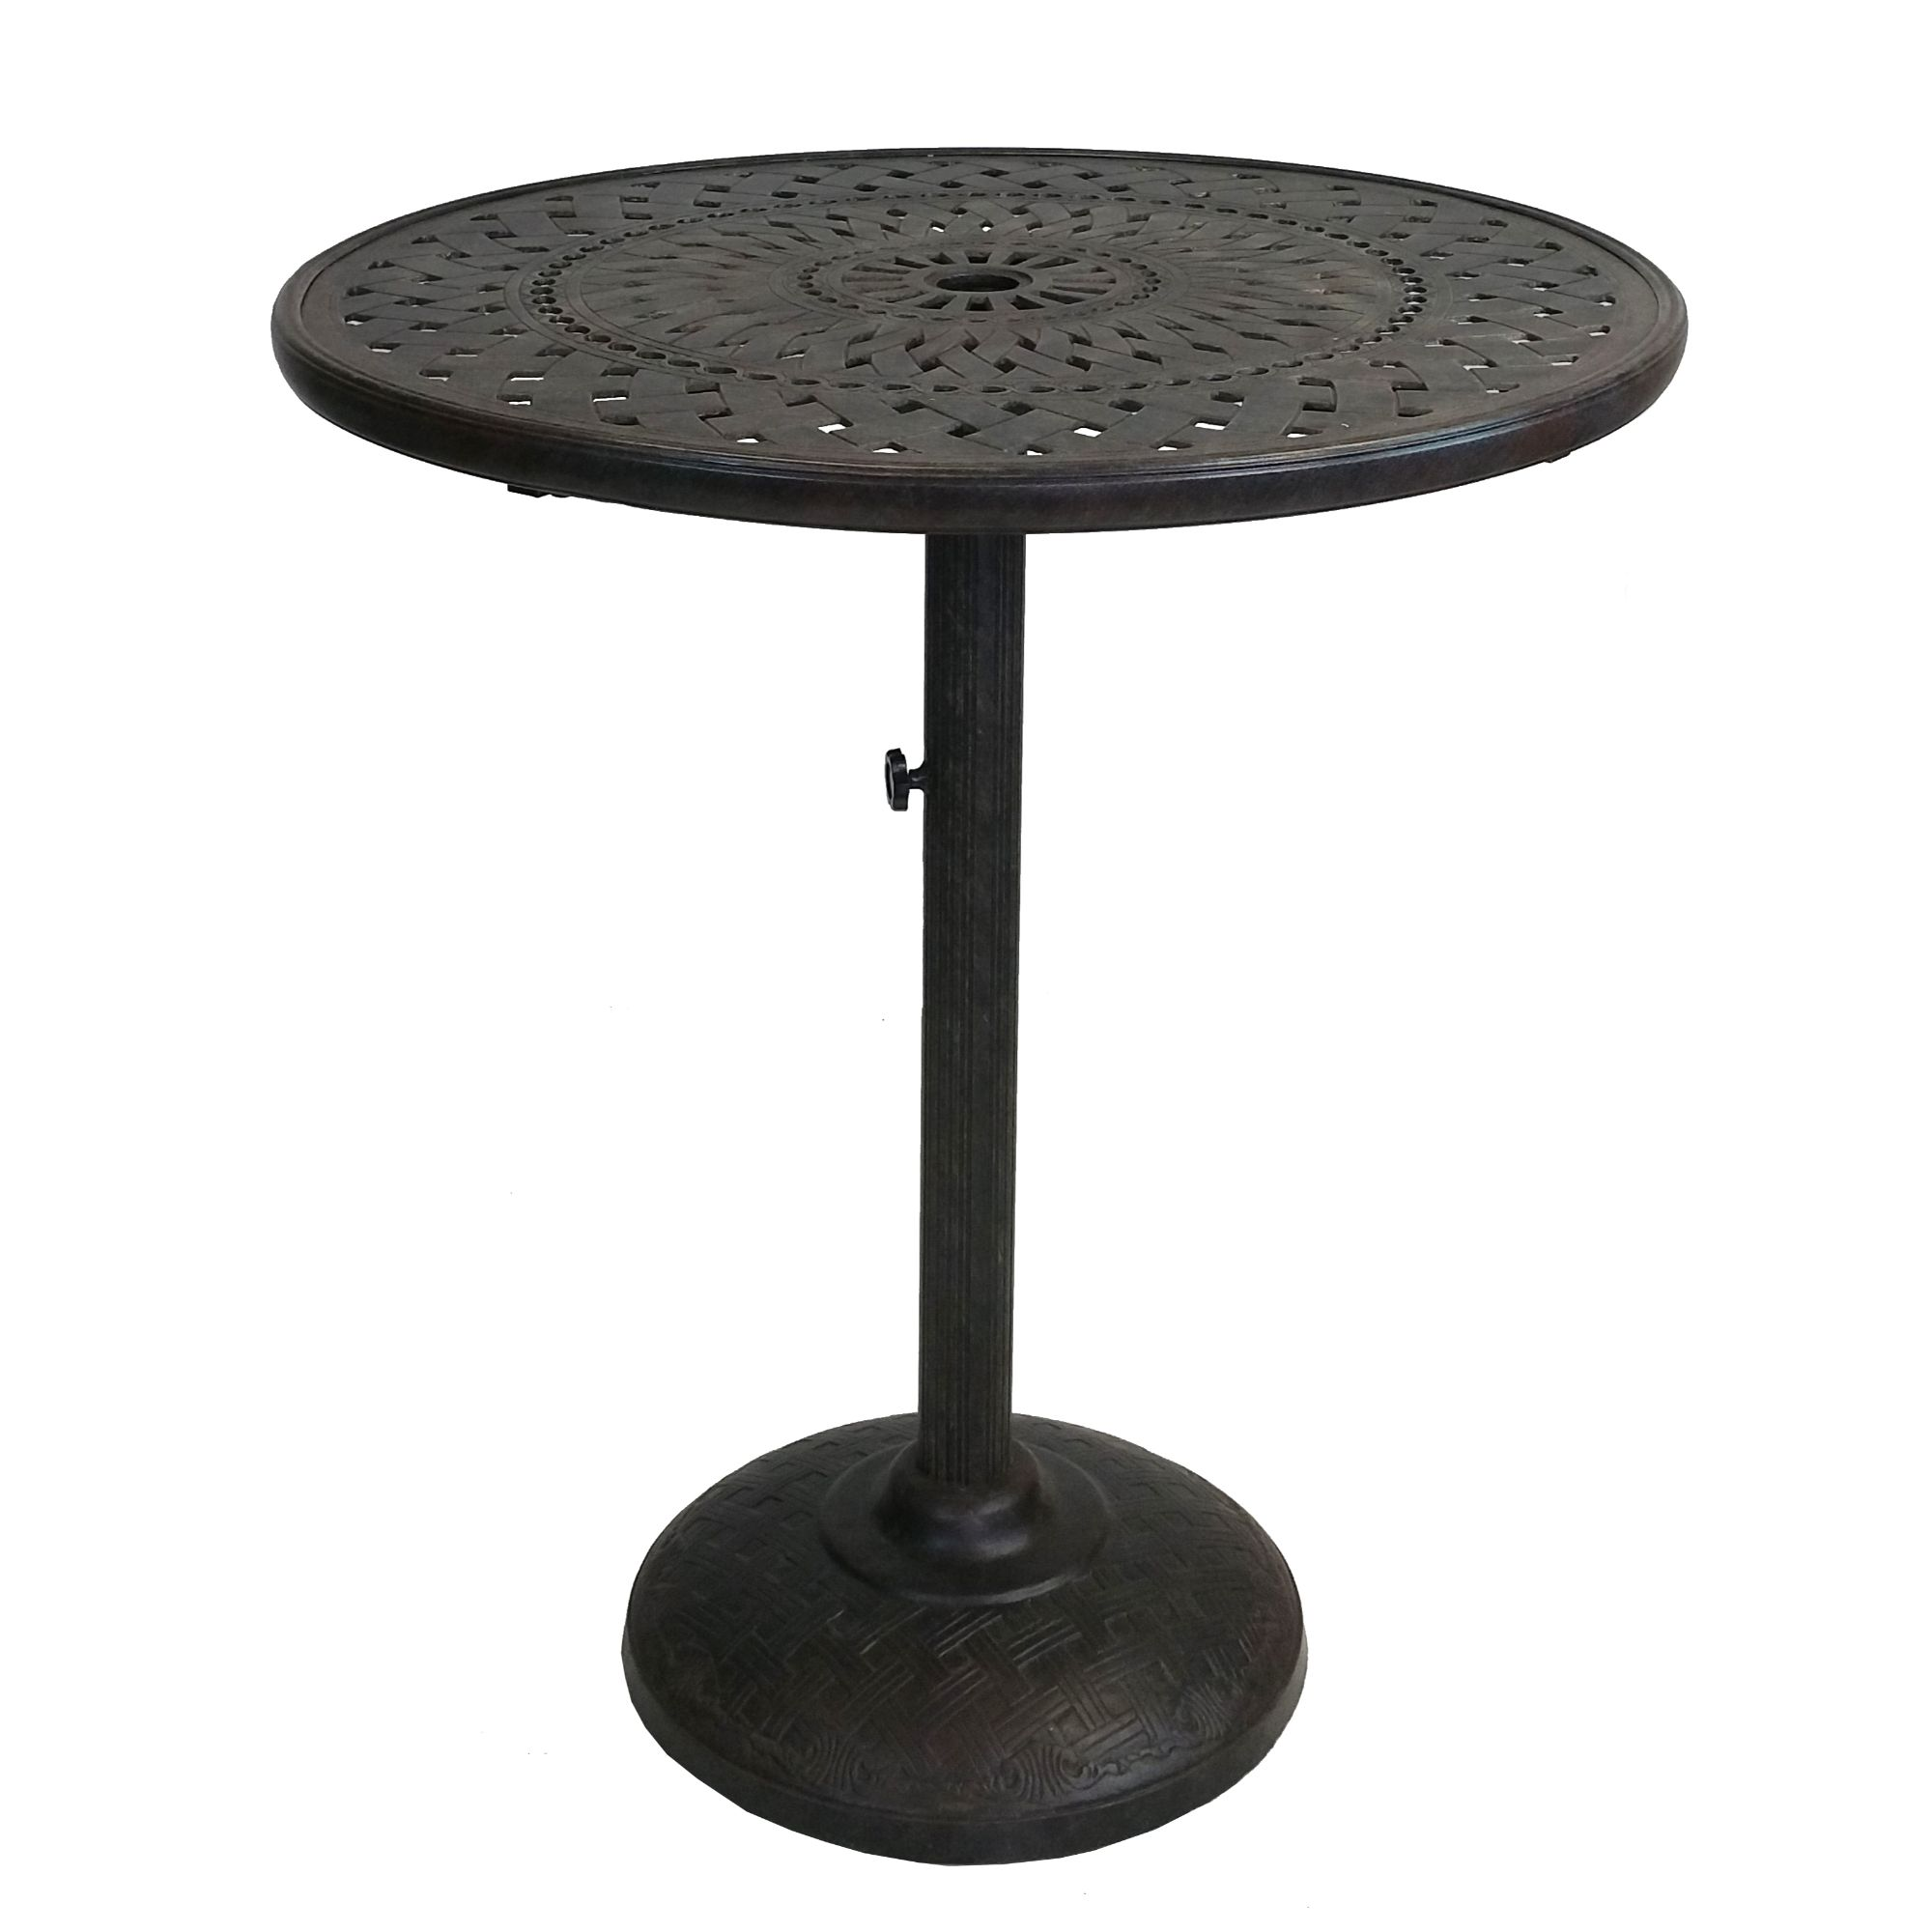 F/&F Furniture Group 40.75 Black-Antique Gold Metal Square Shaped Indoor-Outdoor Bar Height Table